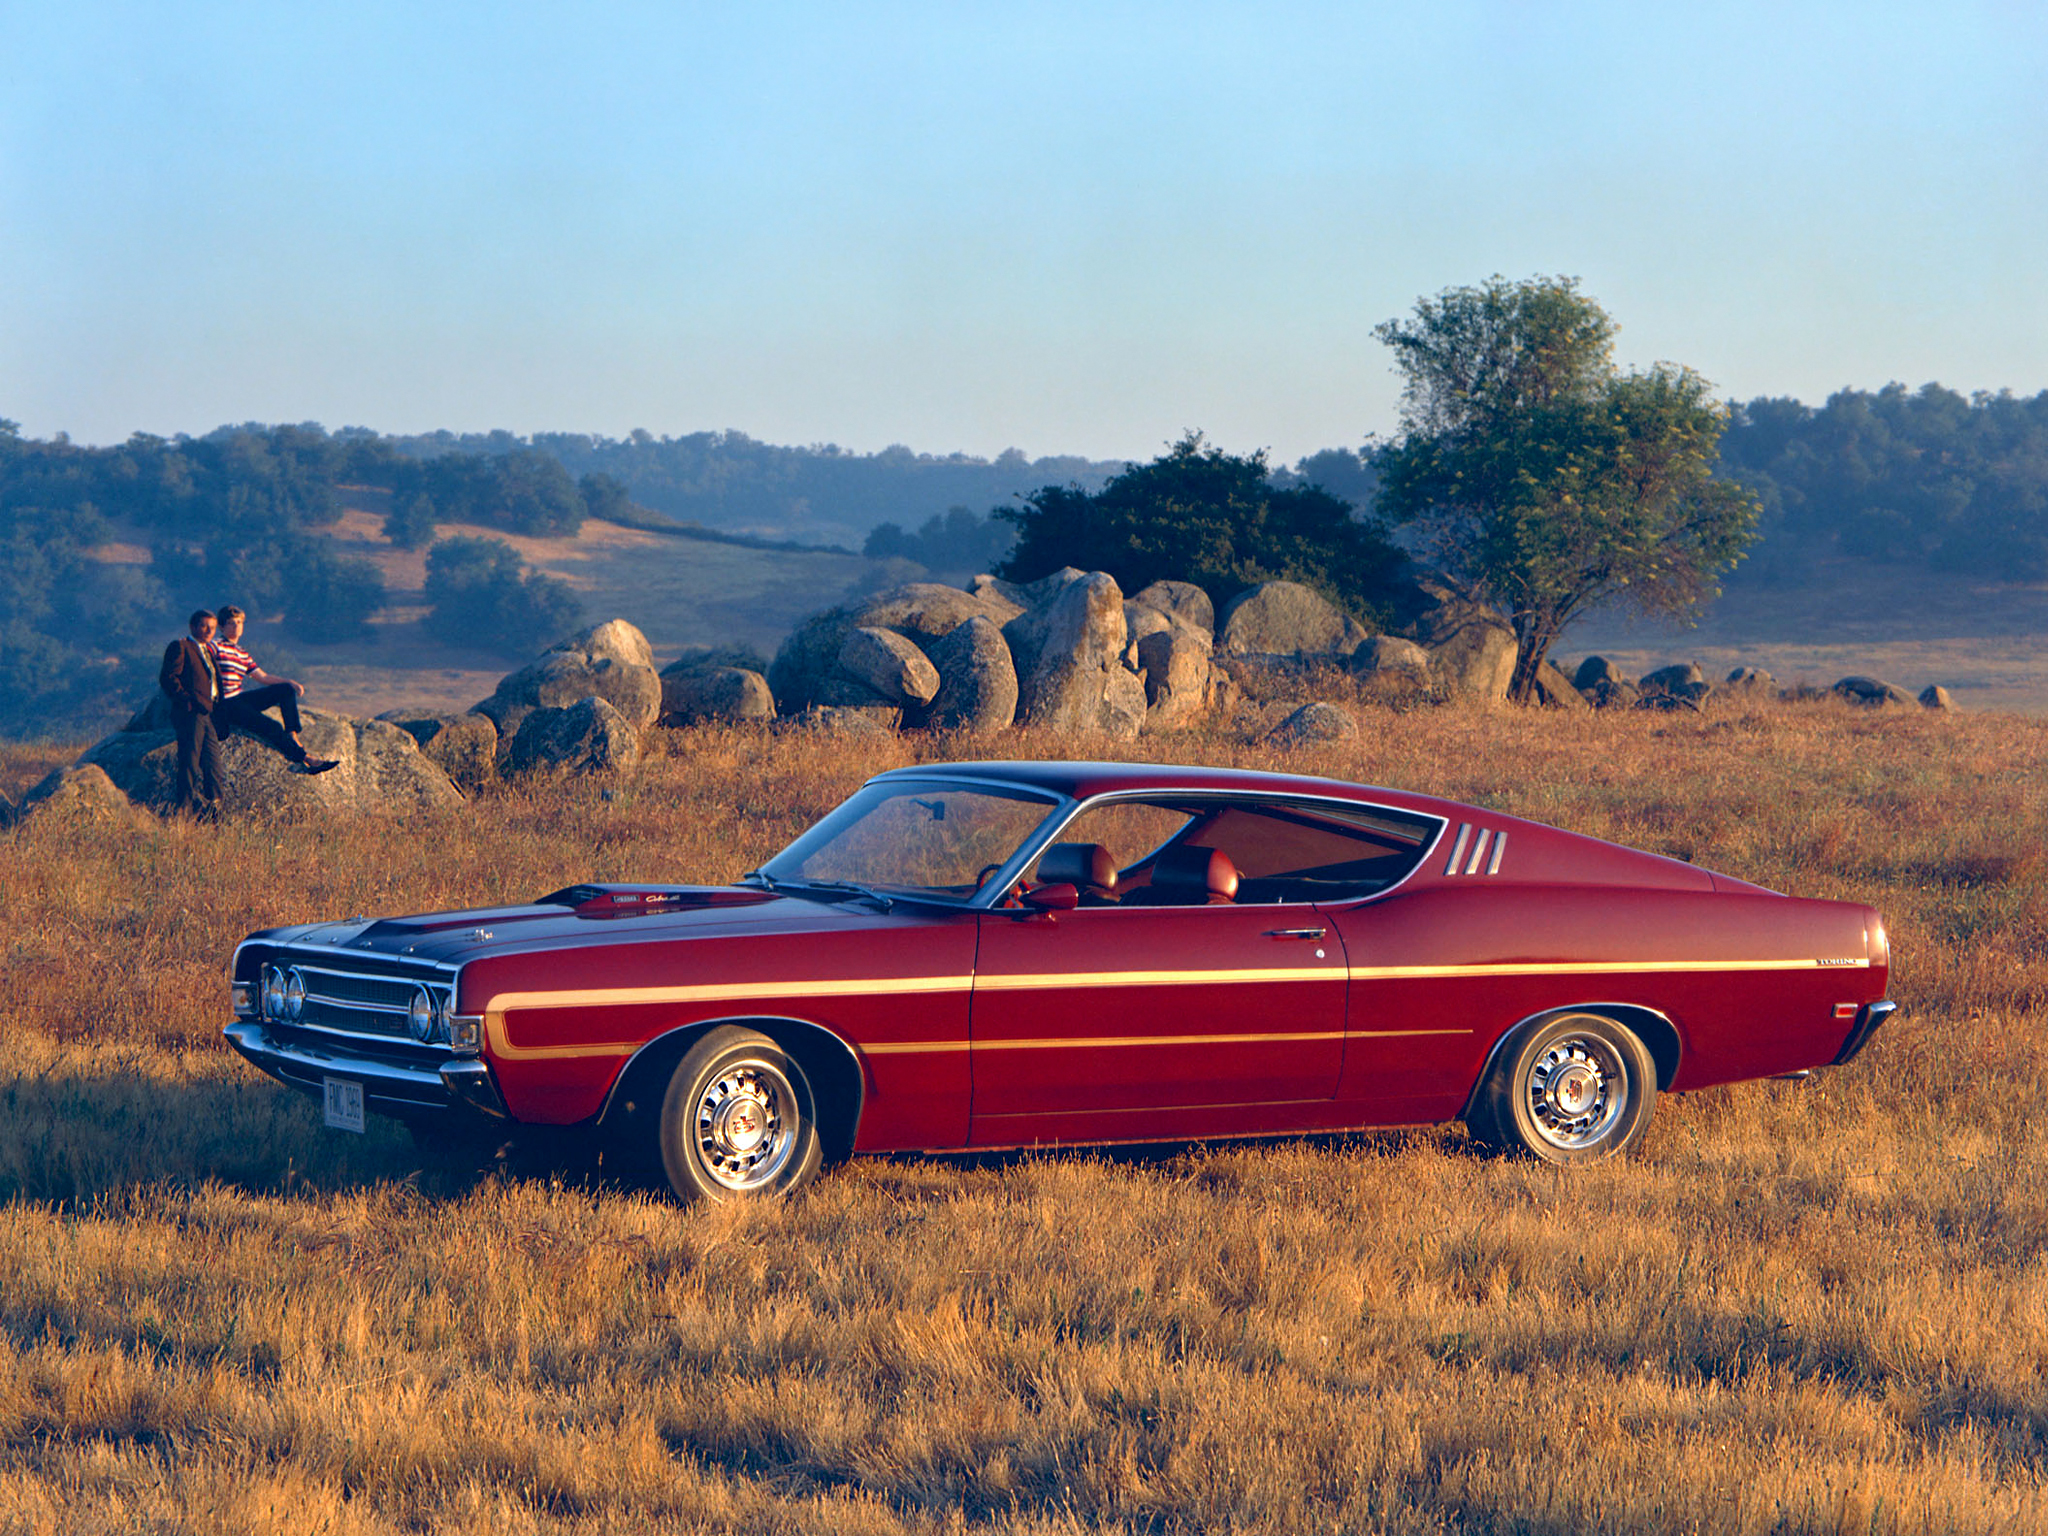 2048x1536 - Ford Torino Wallpapers 22